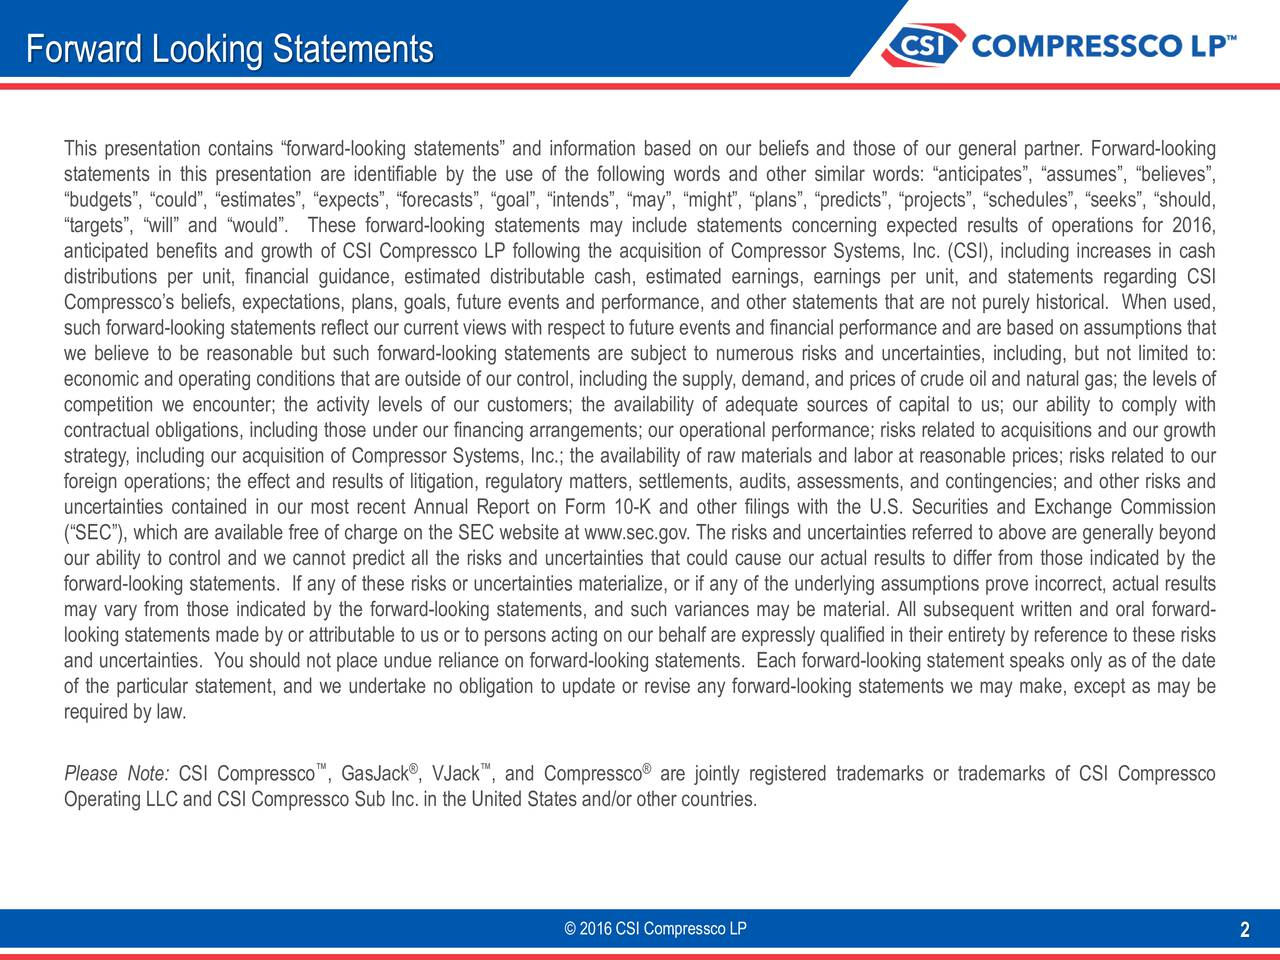 This presentation contains forward-looking statements and information based on our beliefs and those of our general partner. Forward-looking statements in this presentation are identifiable by the use of the following words and other similar words: anticipates, assumes, believes, budgets, could, estimates, expects, forecasts, goal, intends, may, might, plans, predicts, projects, schedules, seeks, should, targets, will and would. These forward-looking statements may include statements concerning expected results of operations for 2016, anticipated benefits and growth of CSI Compressco LP following the acquisition of Compressor Systems, Inc. (CSI), including increases in cash distributions per unit, financial guidance, estimated distributable cash, estimated earnings, earnings per unit, and statements regarding CSI Compresscos beliefs, expectations, plans, goals, future events and performance, and other statements that are not purely historical. When used, such forward-looking statements reflect our current views with respect to future events and financial performance and are based on assumptions that we believe to be reasonable but such forward-looking statements are subject to numerous risks and uncertainties, including, but not limited to: economic and operating conditions that are outside of our control, including the supply, demand, and prices of crude oil and natural gas; the levels of competition we encounter; the activity levels of our customers; the availability of adequate sources of capital to us; our ability to comply with contractual obligations, including those under our financing arrangements; our operational performance; risks related to acquisitions and our growth strategy, including our acquisition of Compressor Systems, Inc.; the availability of raw materials and labor at reasonable prices; risks related to our foreign operations; the effect and results of litigation, regulatory matters, settlements, audits, assessments, and contingencies; and other